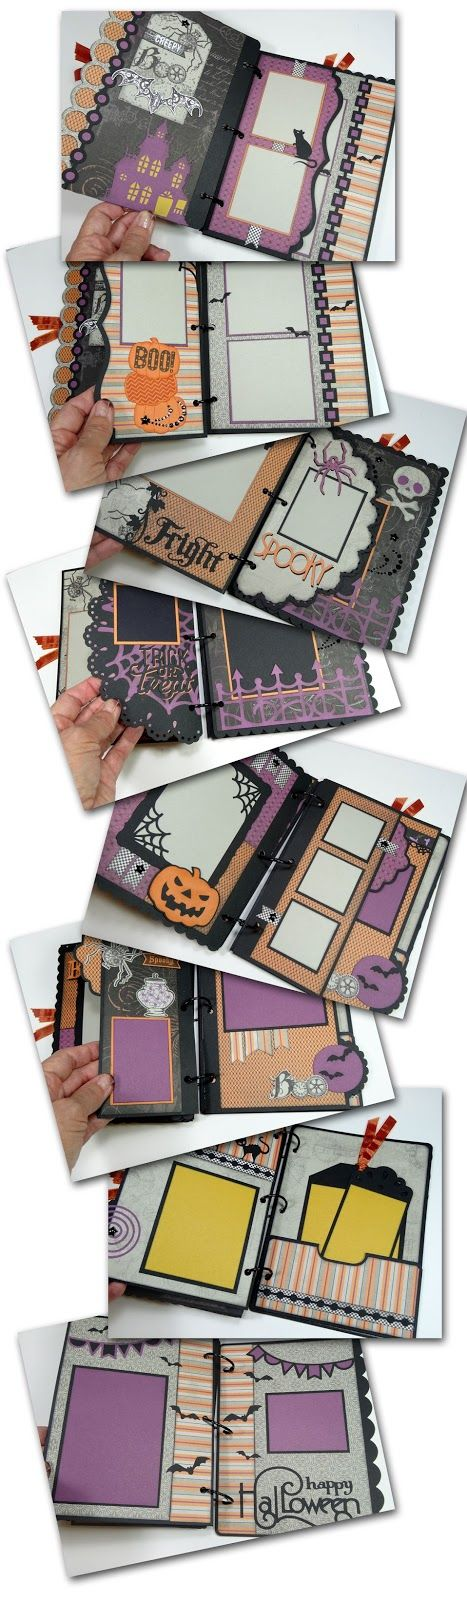 Hello all! As promised in my Instagram, Facebook and Twitter sneak peek posts over the weekend, I have finished my Halloween Mini Album 201...